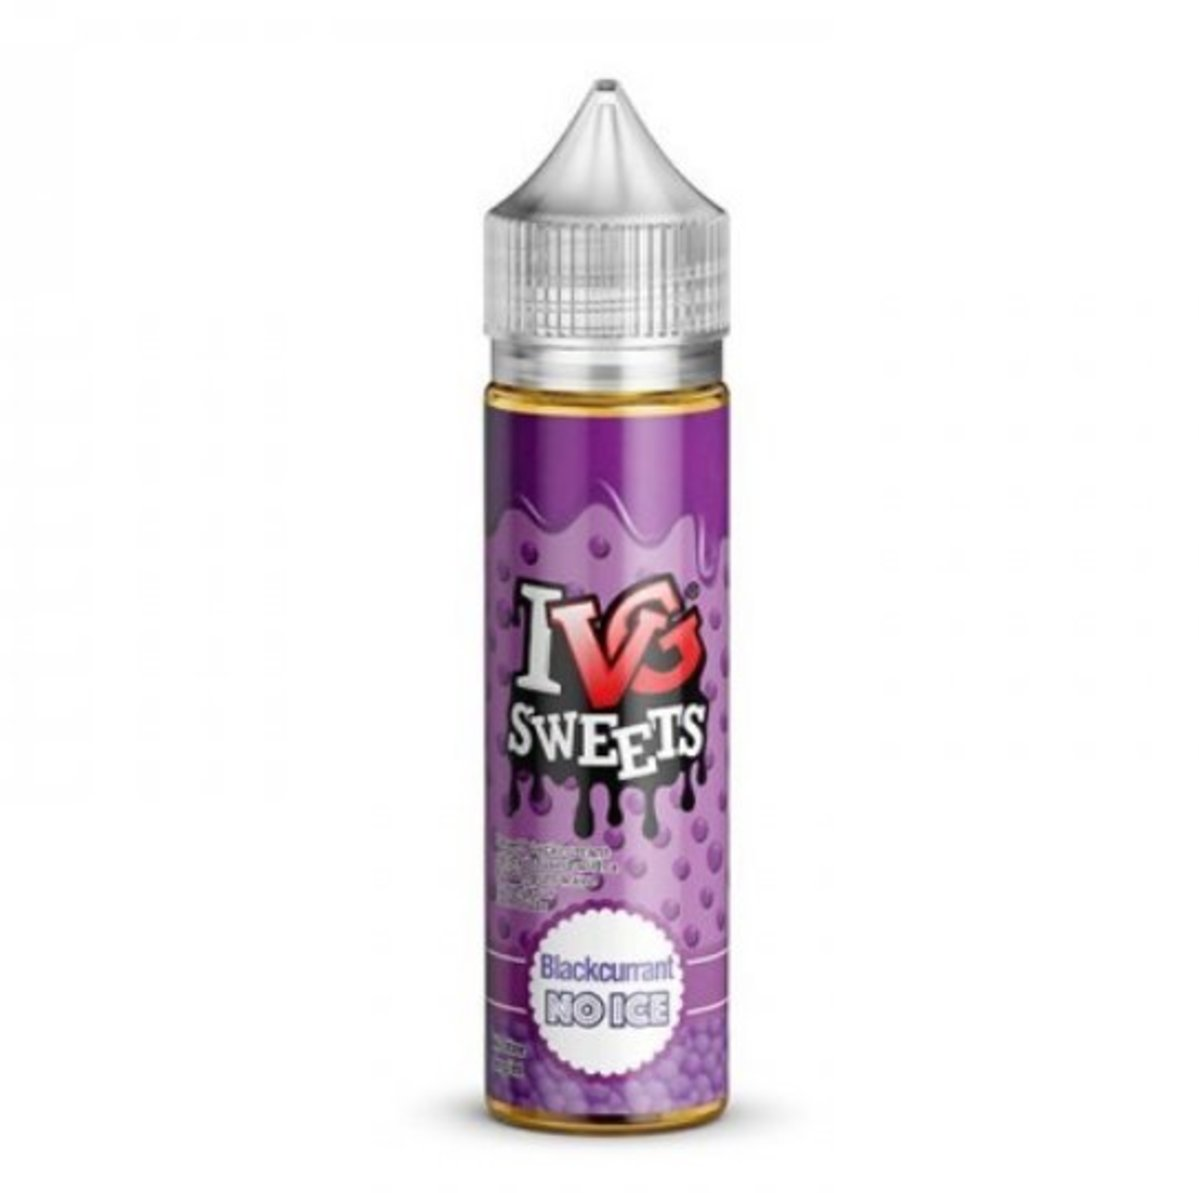 IVG Sweets – No Ice Blackcurrant – (70VG/30PG) 0mg 50ml